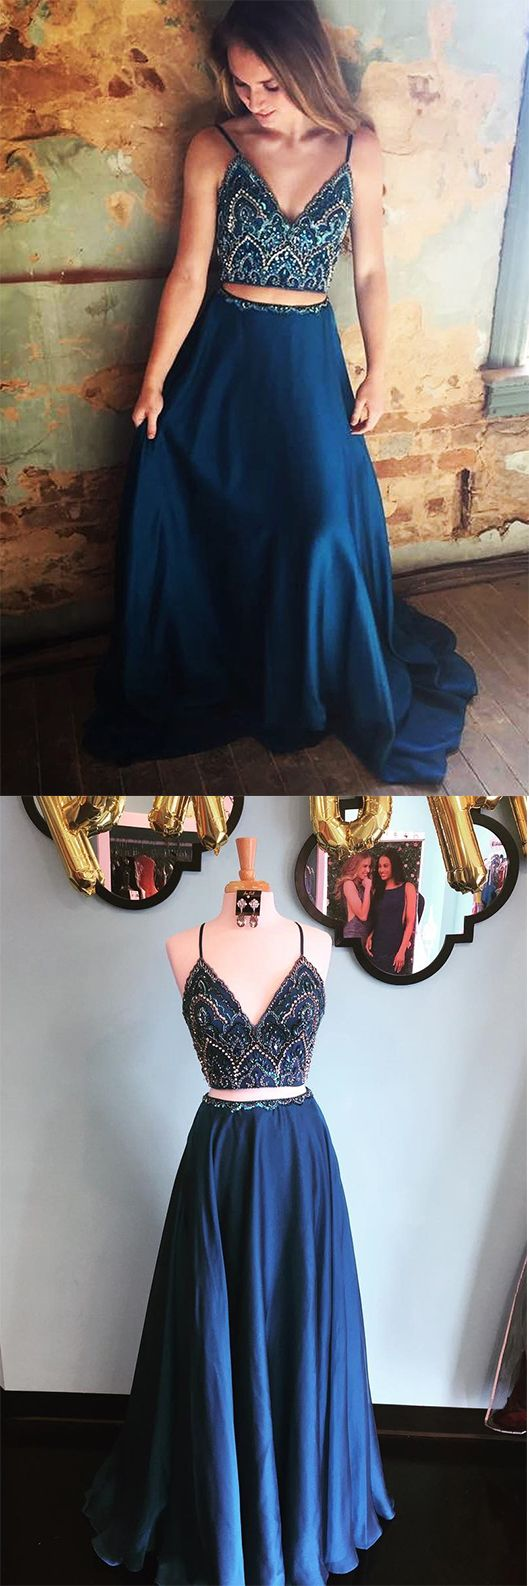 Sparkly Prom Dresses,Two Piece Prom Dress,Beading Prom Dresses,Navy Blue Prom Gown,Long Prom Dress #blue #beading #twopieces #aline #vneck #okdresses